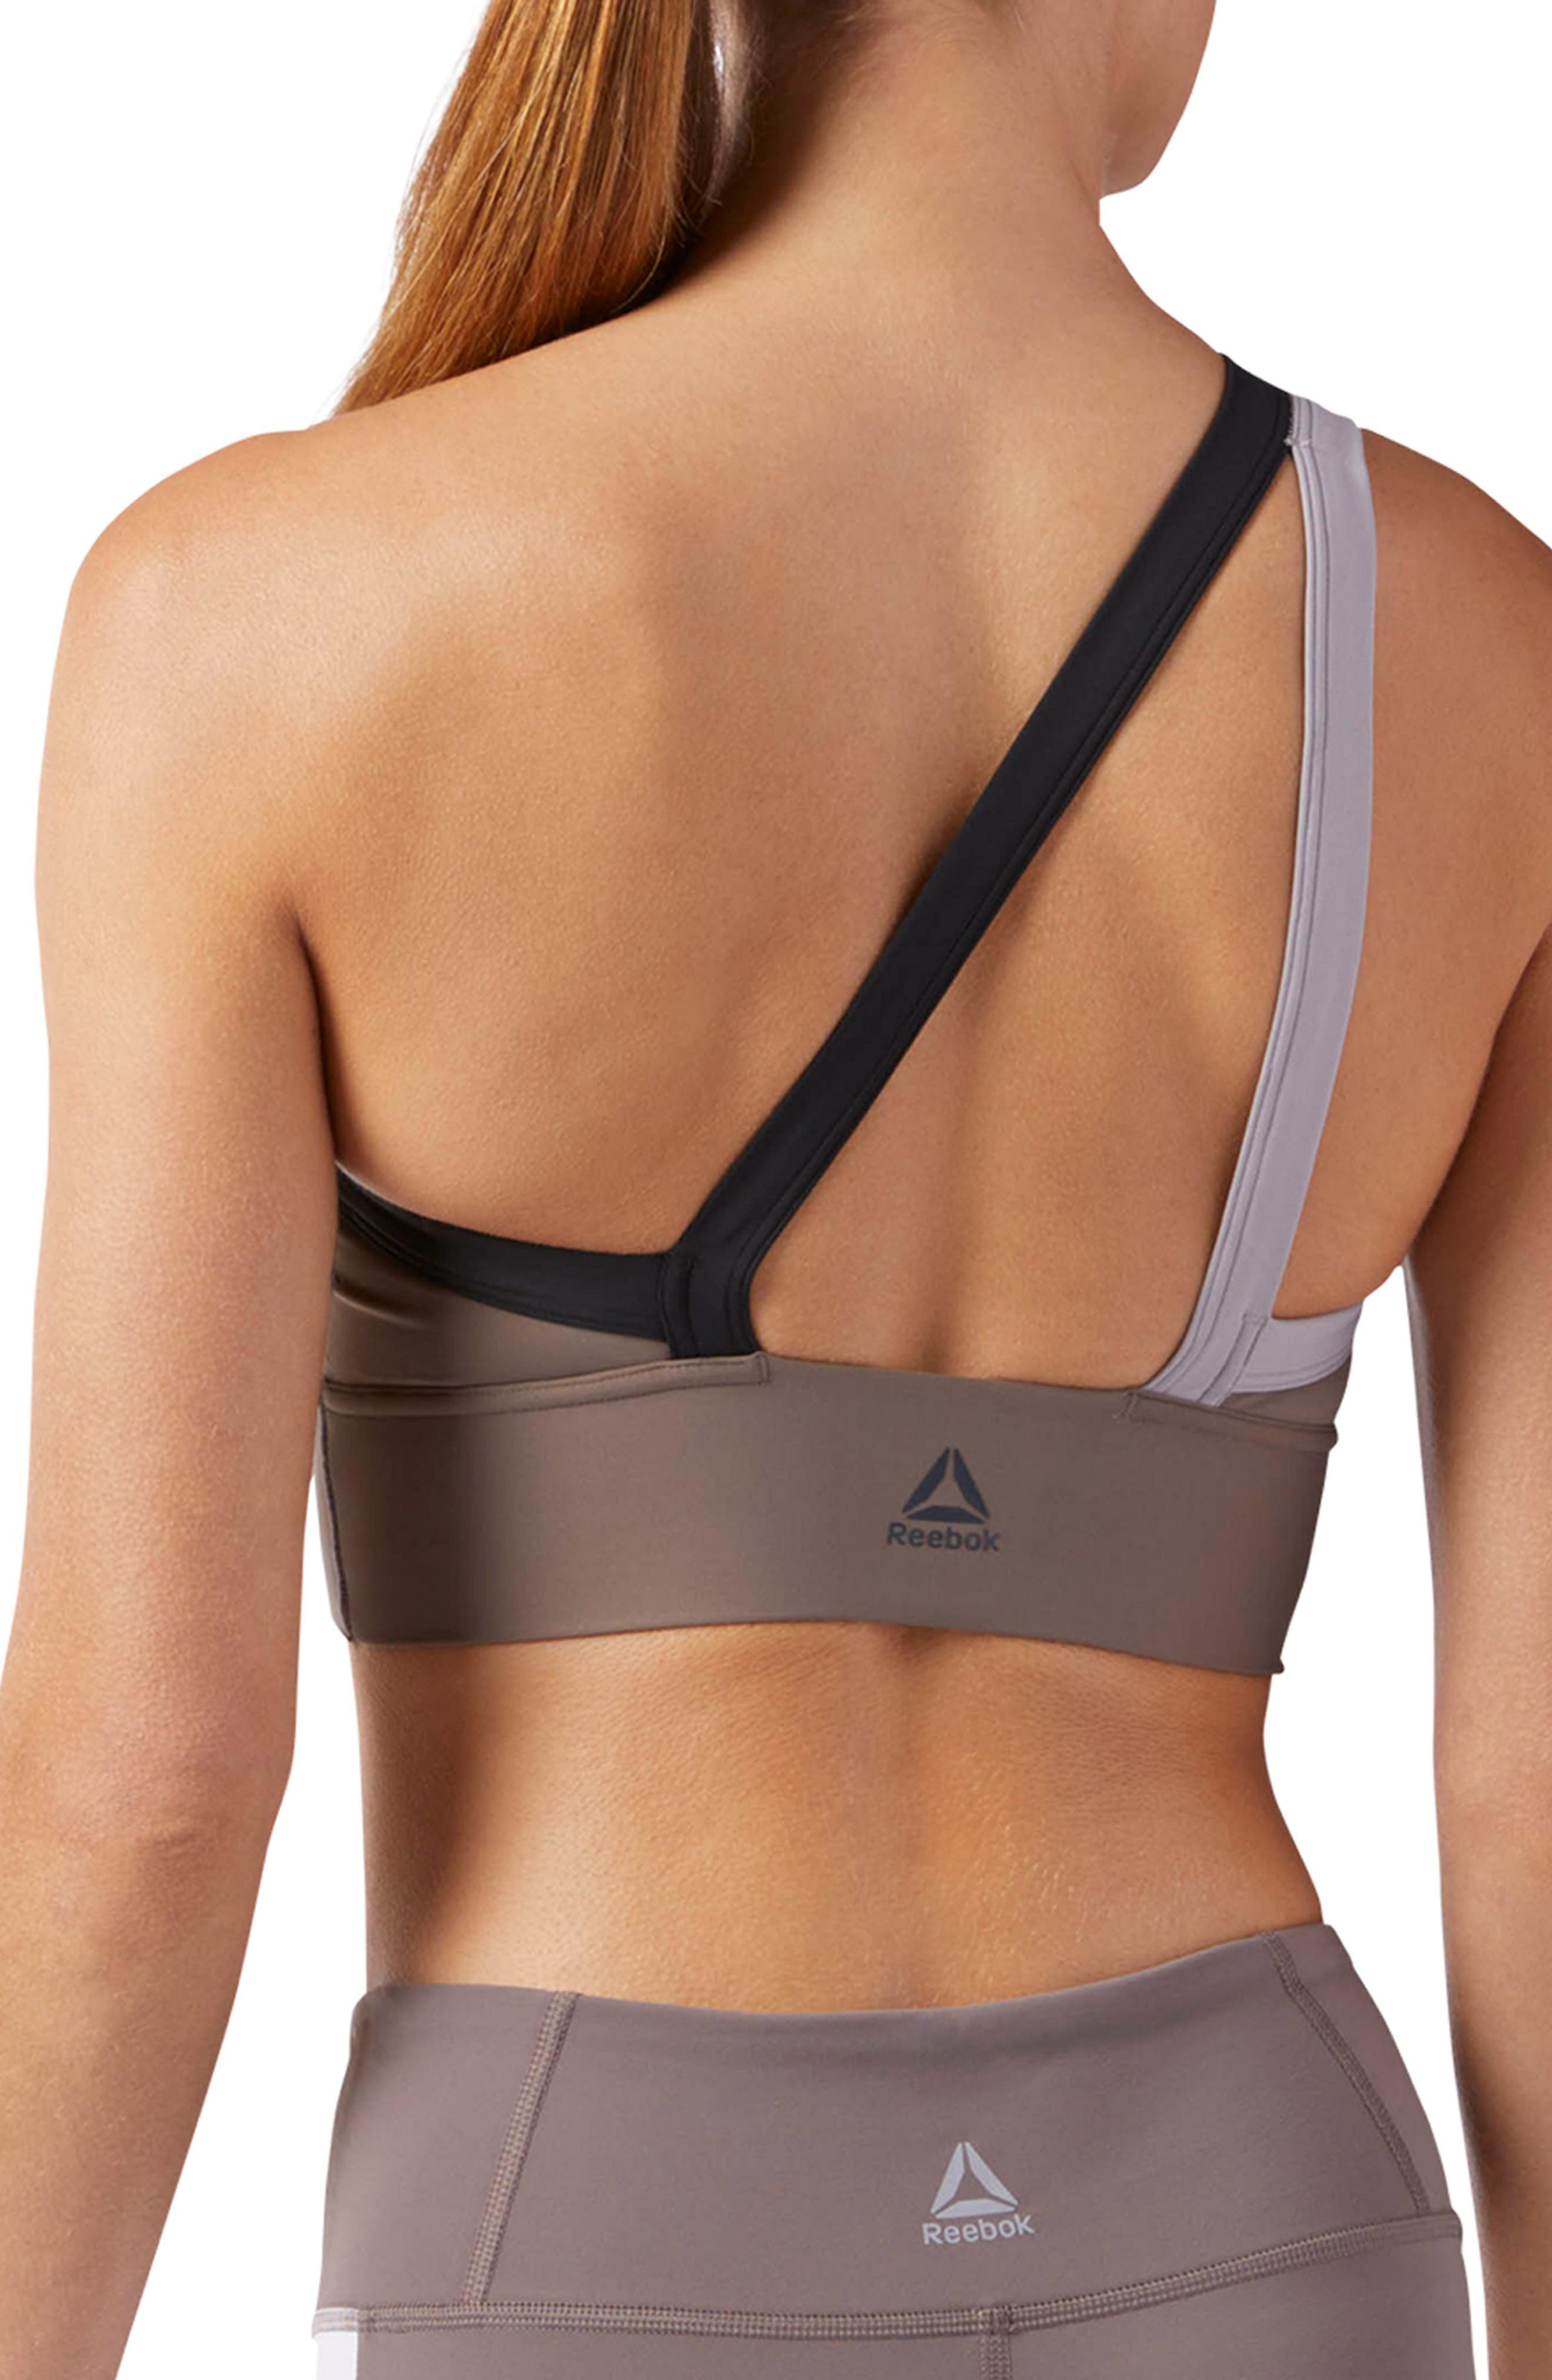 One-Shoulder Sports Bra,                             Alternate thumbnail 2, color,                             Smoky Taupe S18-R